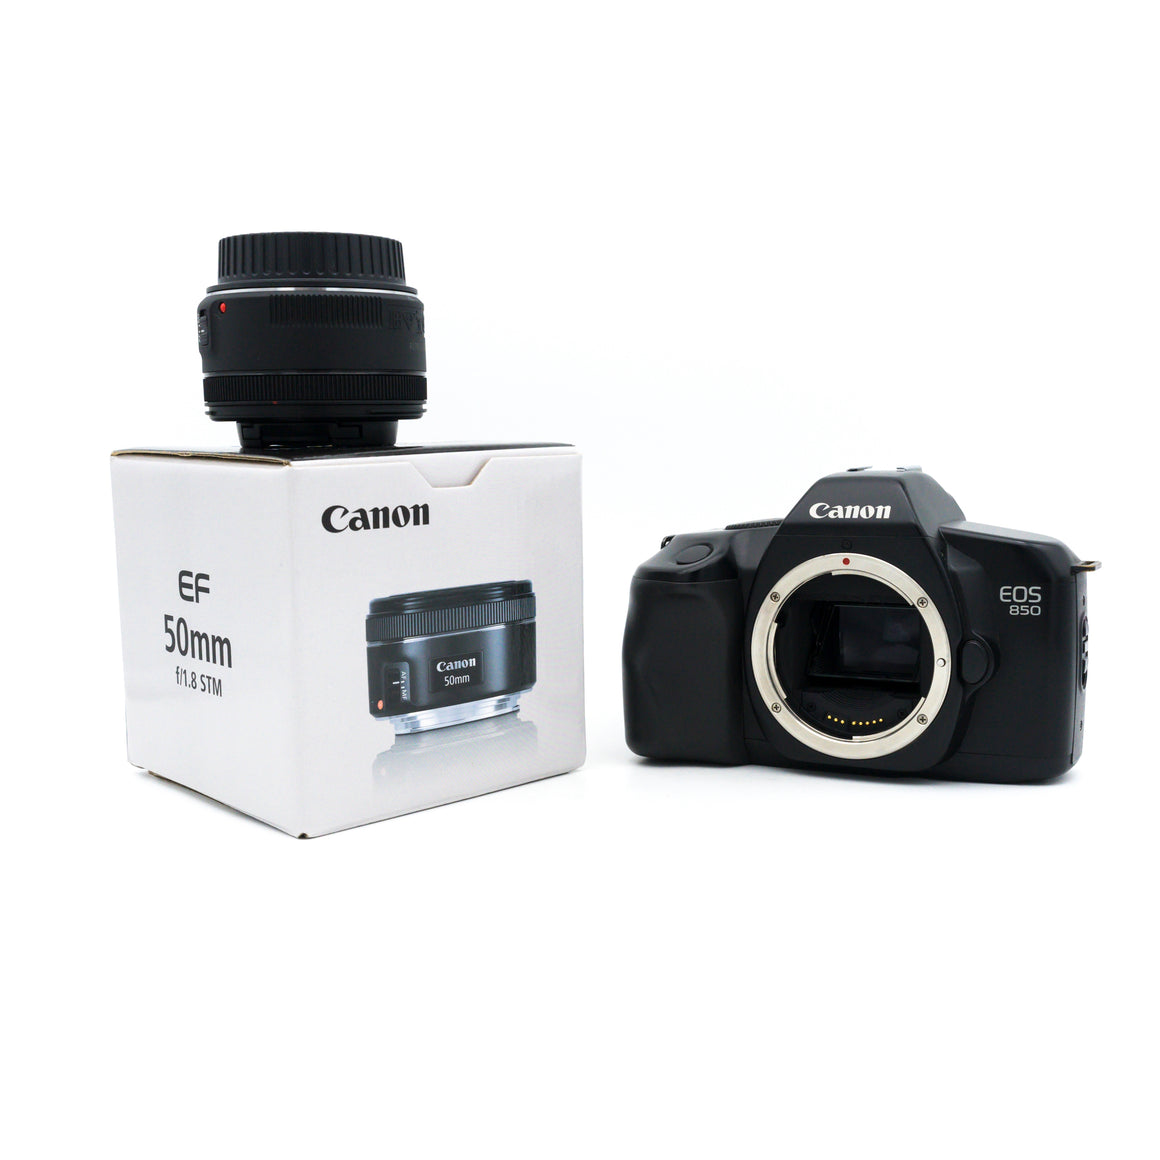 Canon EOS 850 SLR with Canon EF 50mm F1.8 STM Lens kit